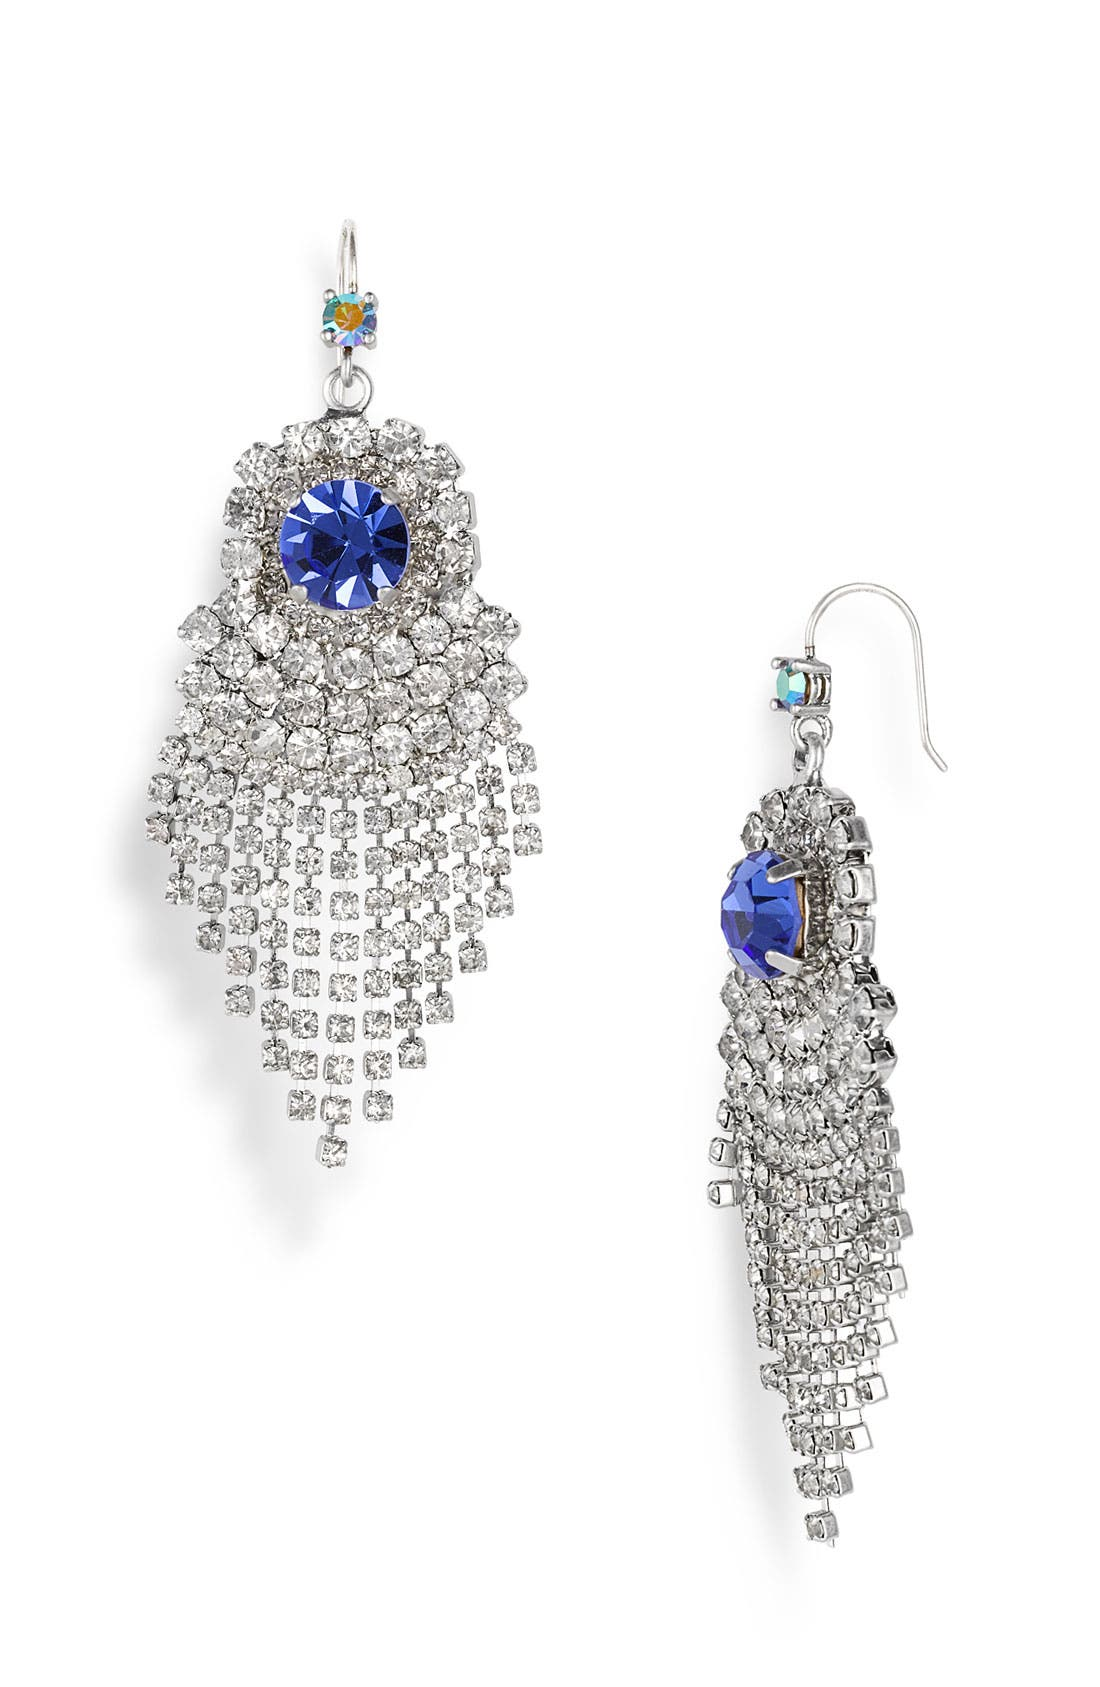 Alternate Image 1 Selected - Juicy Couture 'Hard Core Couture' Chandelier Fringe Earrings